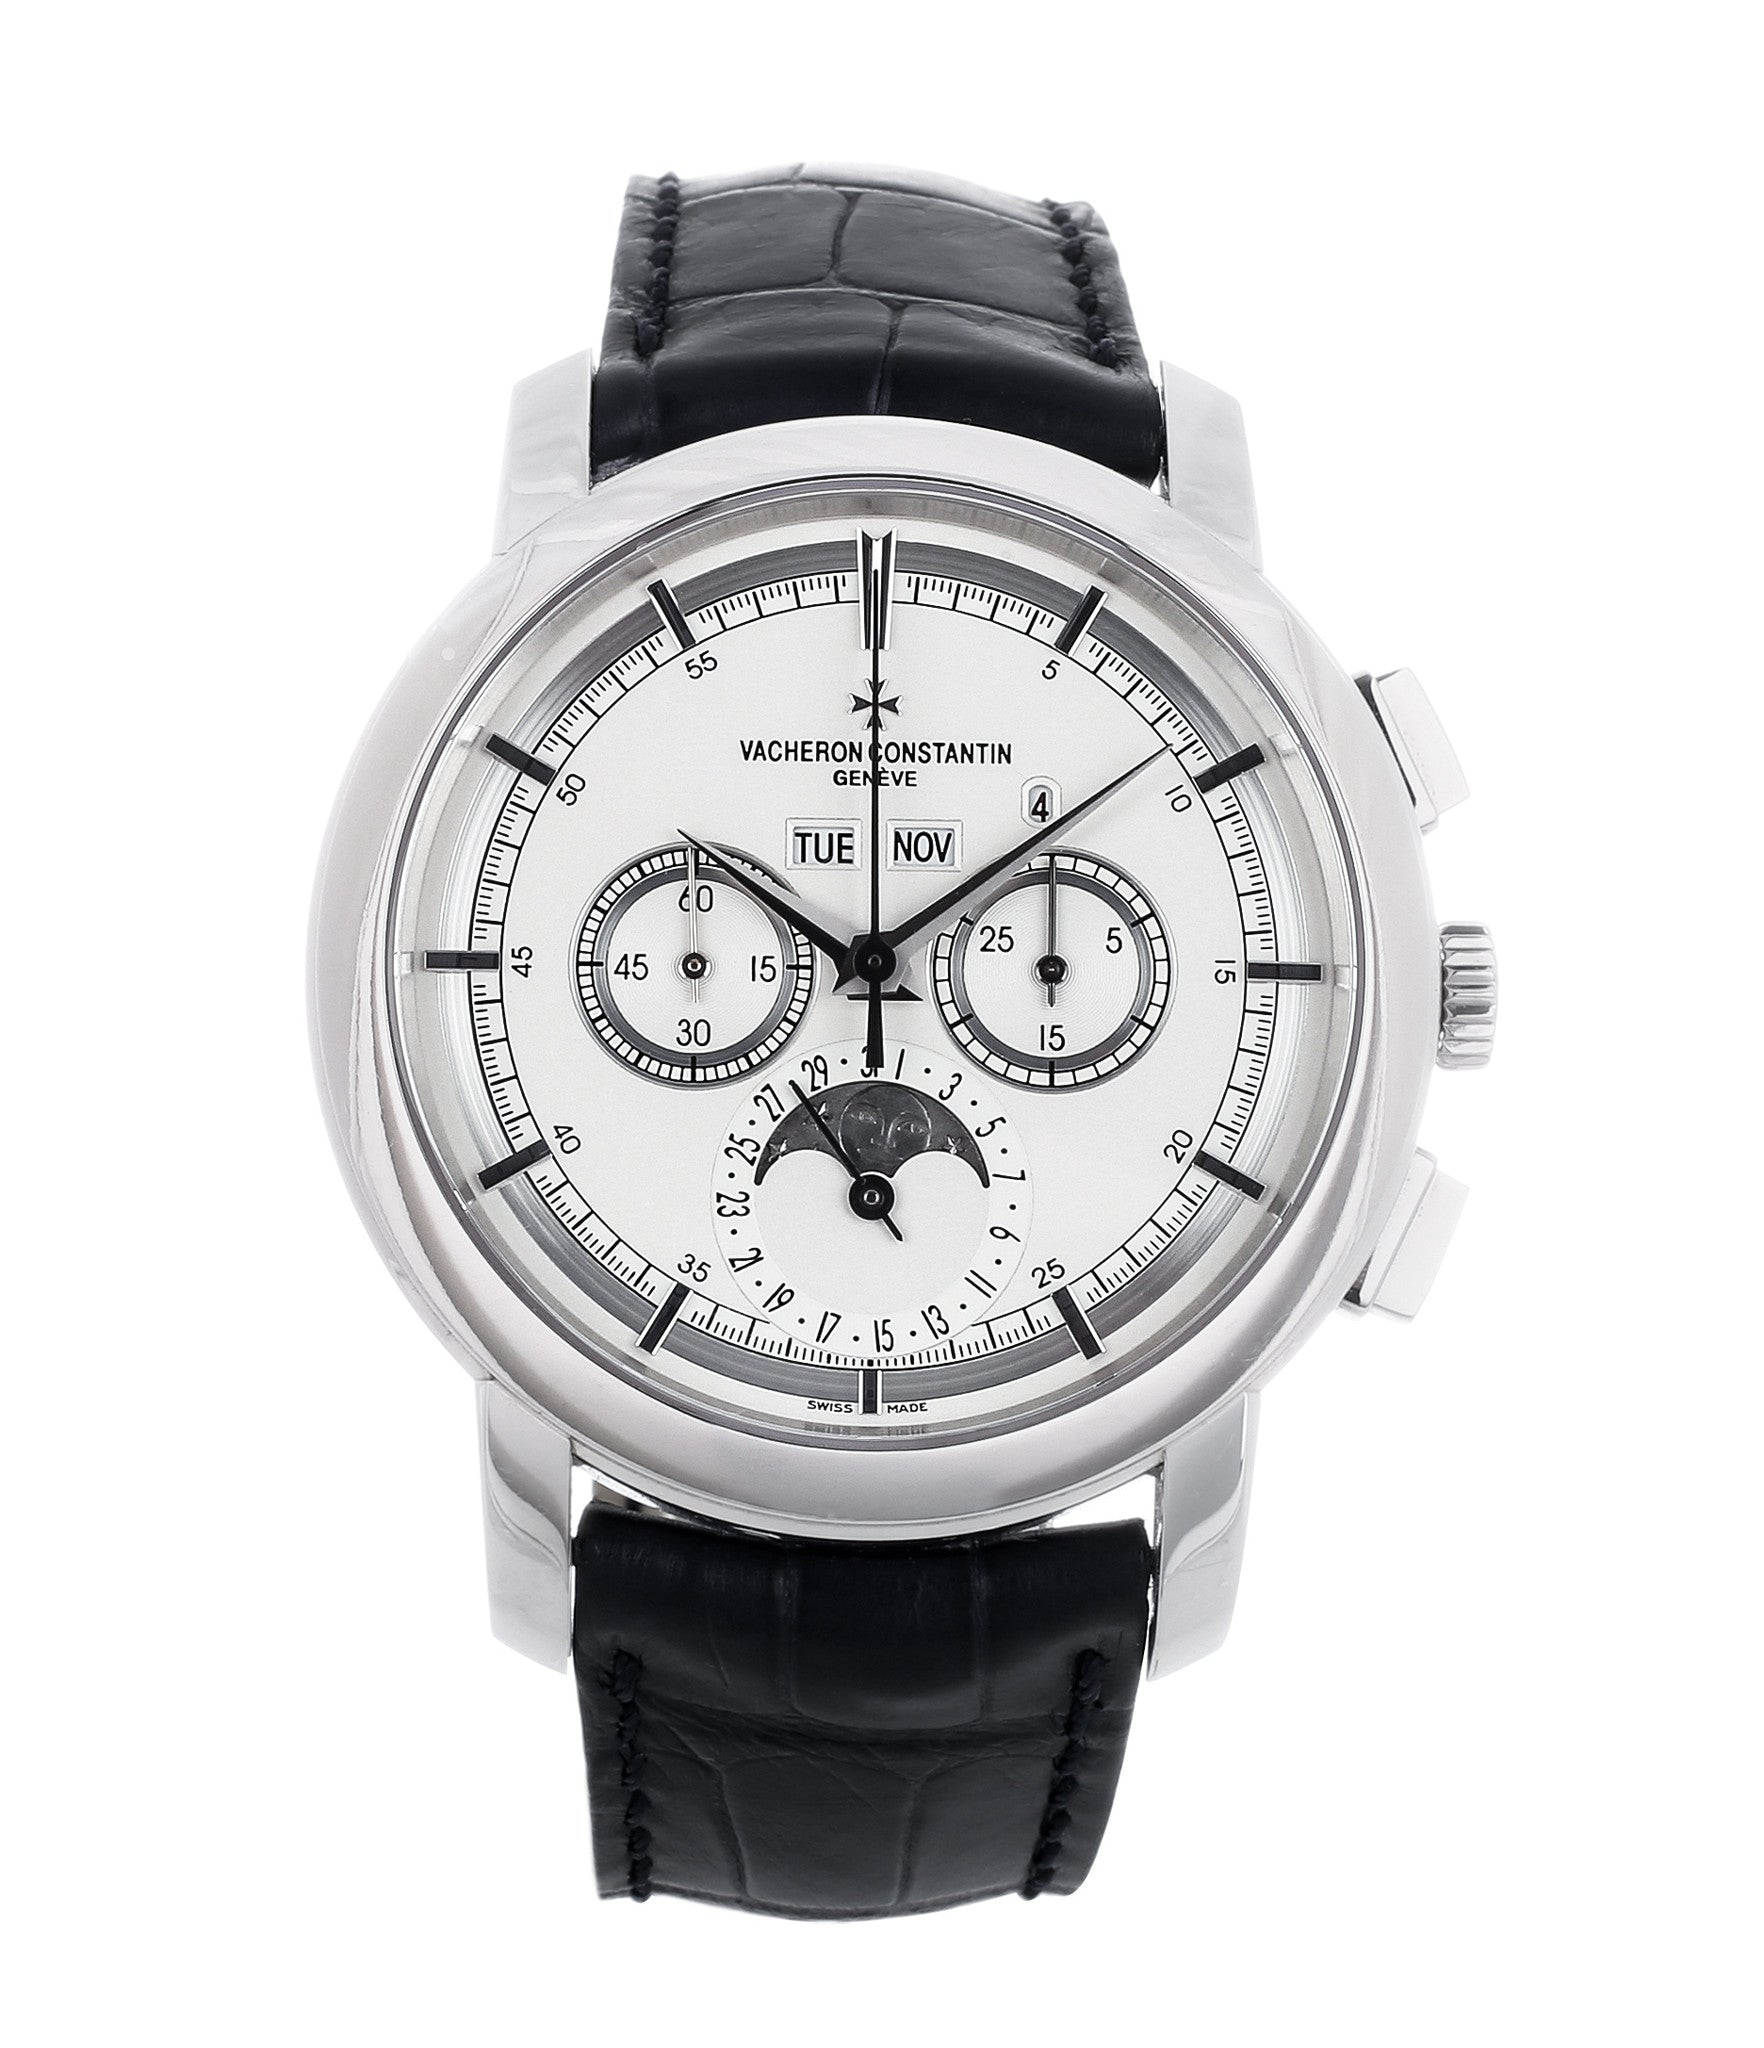 buy Vacheron Constantin Patrimony Traditionelle Chronograph Perpetual Calendar 47292-000P platinum dress watch for sale WATCH XCHANGE LONDON with full set and authenticity guaranteed